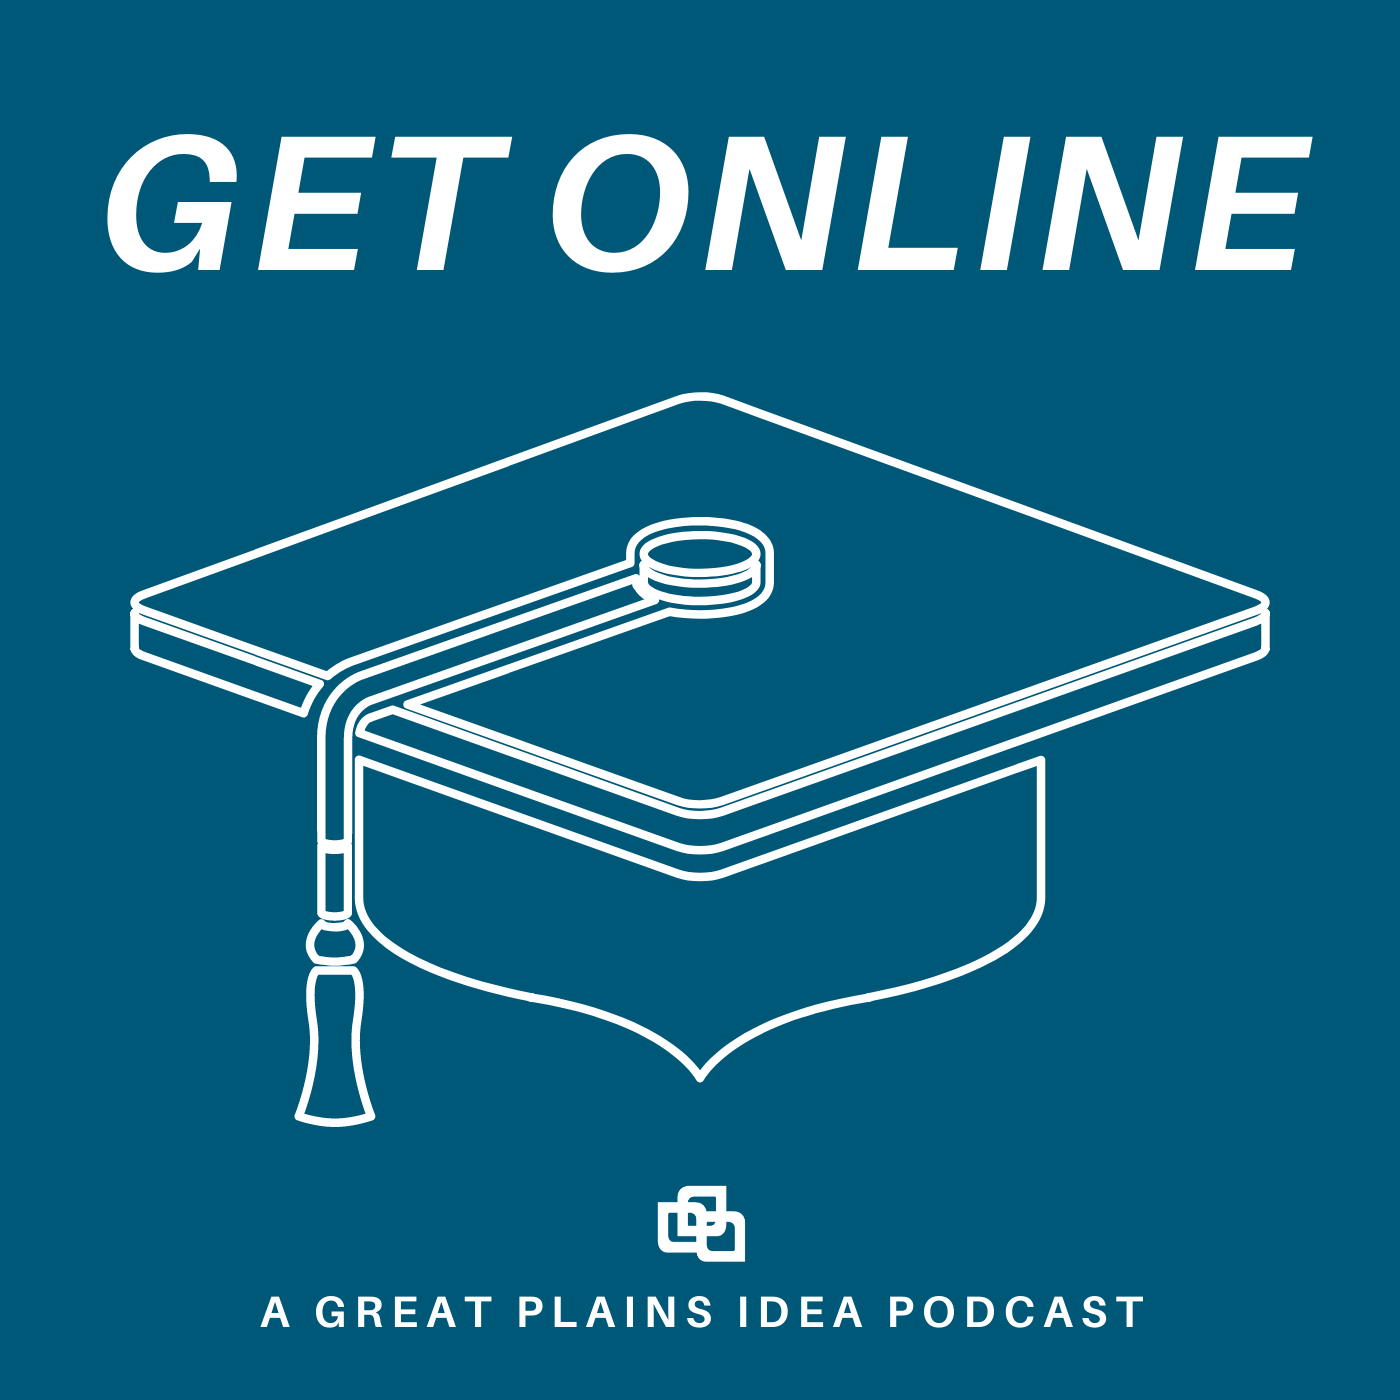 Graduation cap with tassel and title Get Online a Great Plains IDEA Podcast